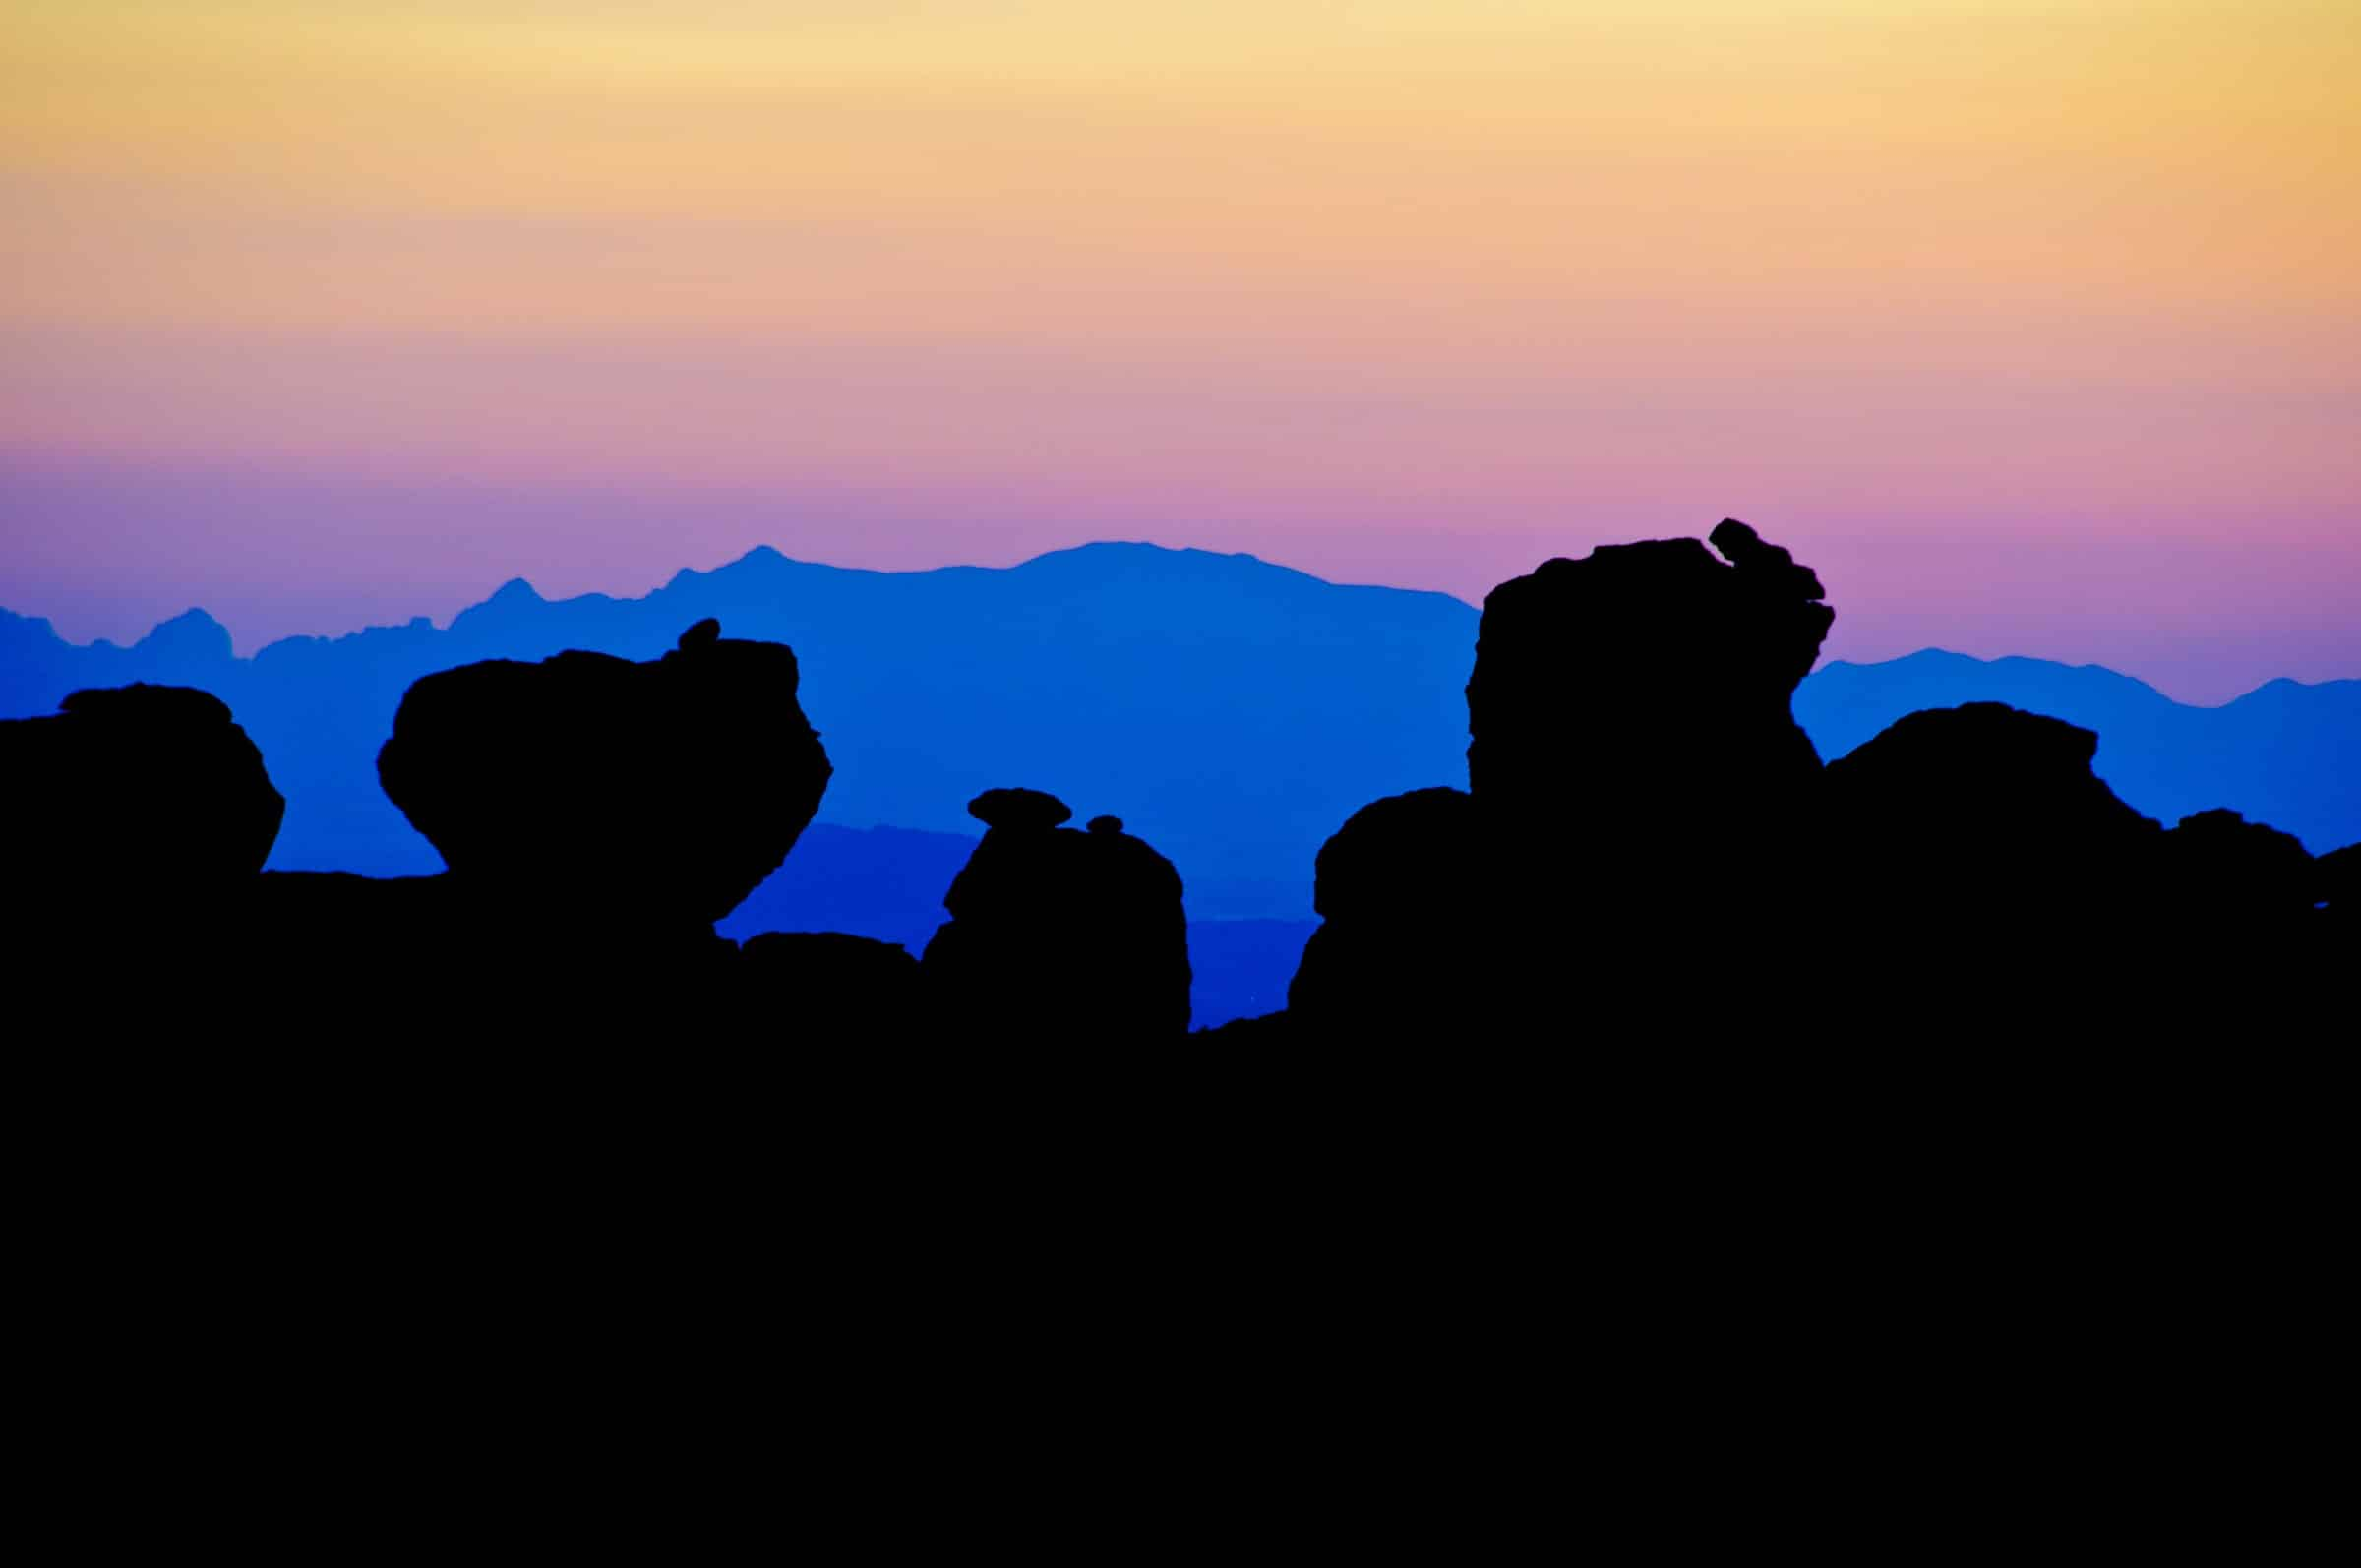 Columns of Rhyolite Canyon Tuff silhouetted by twilight color in Chiricahua National Monument.